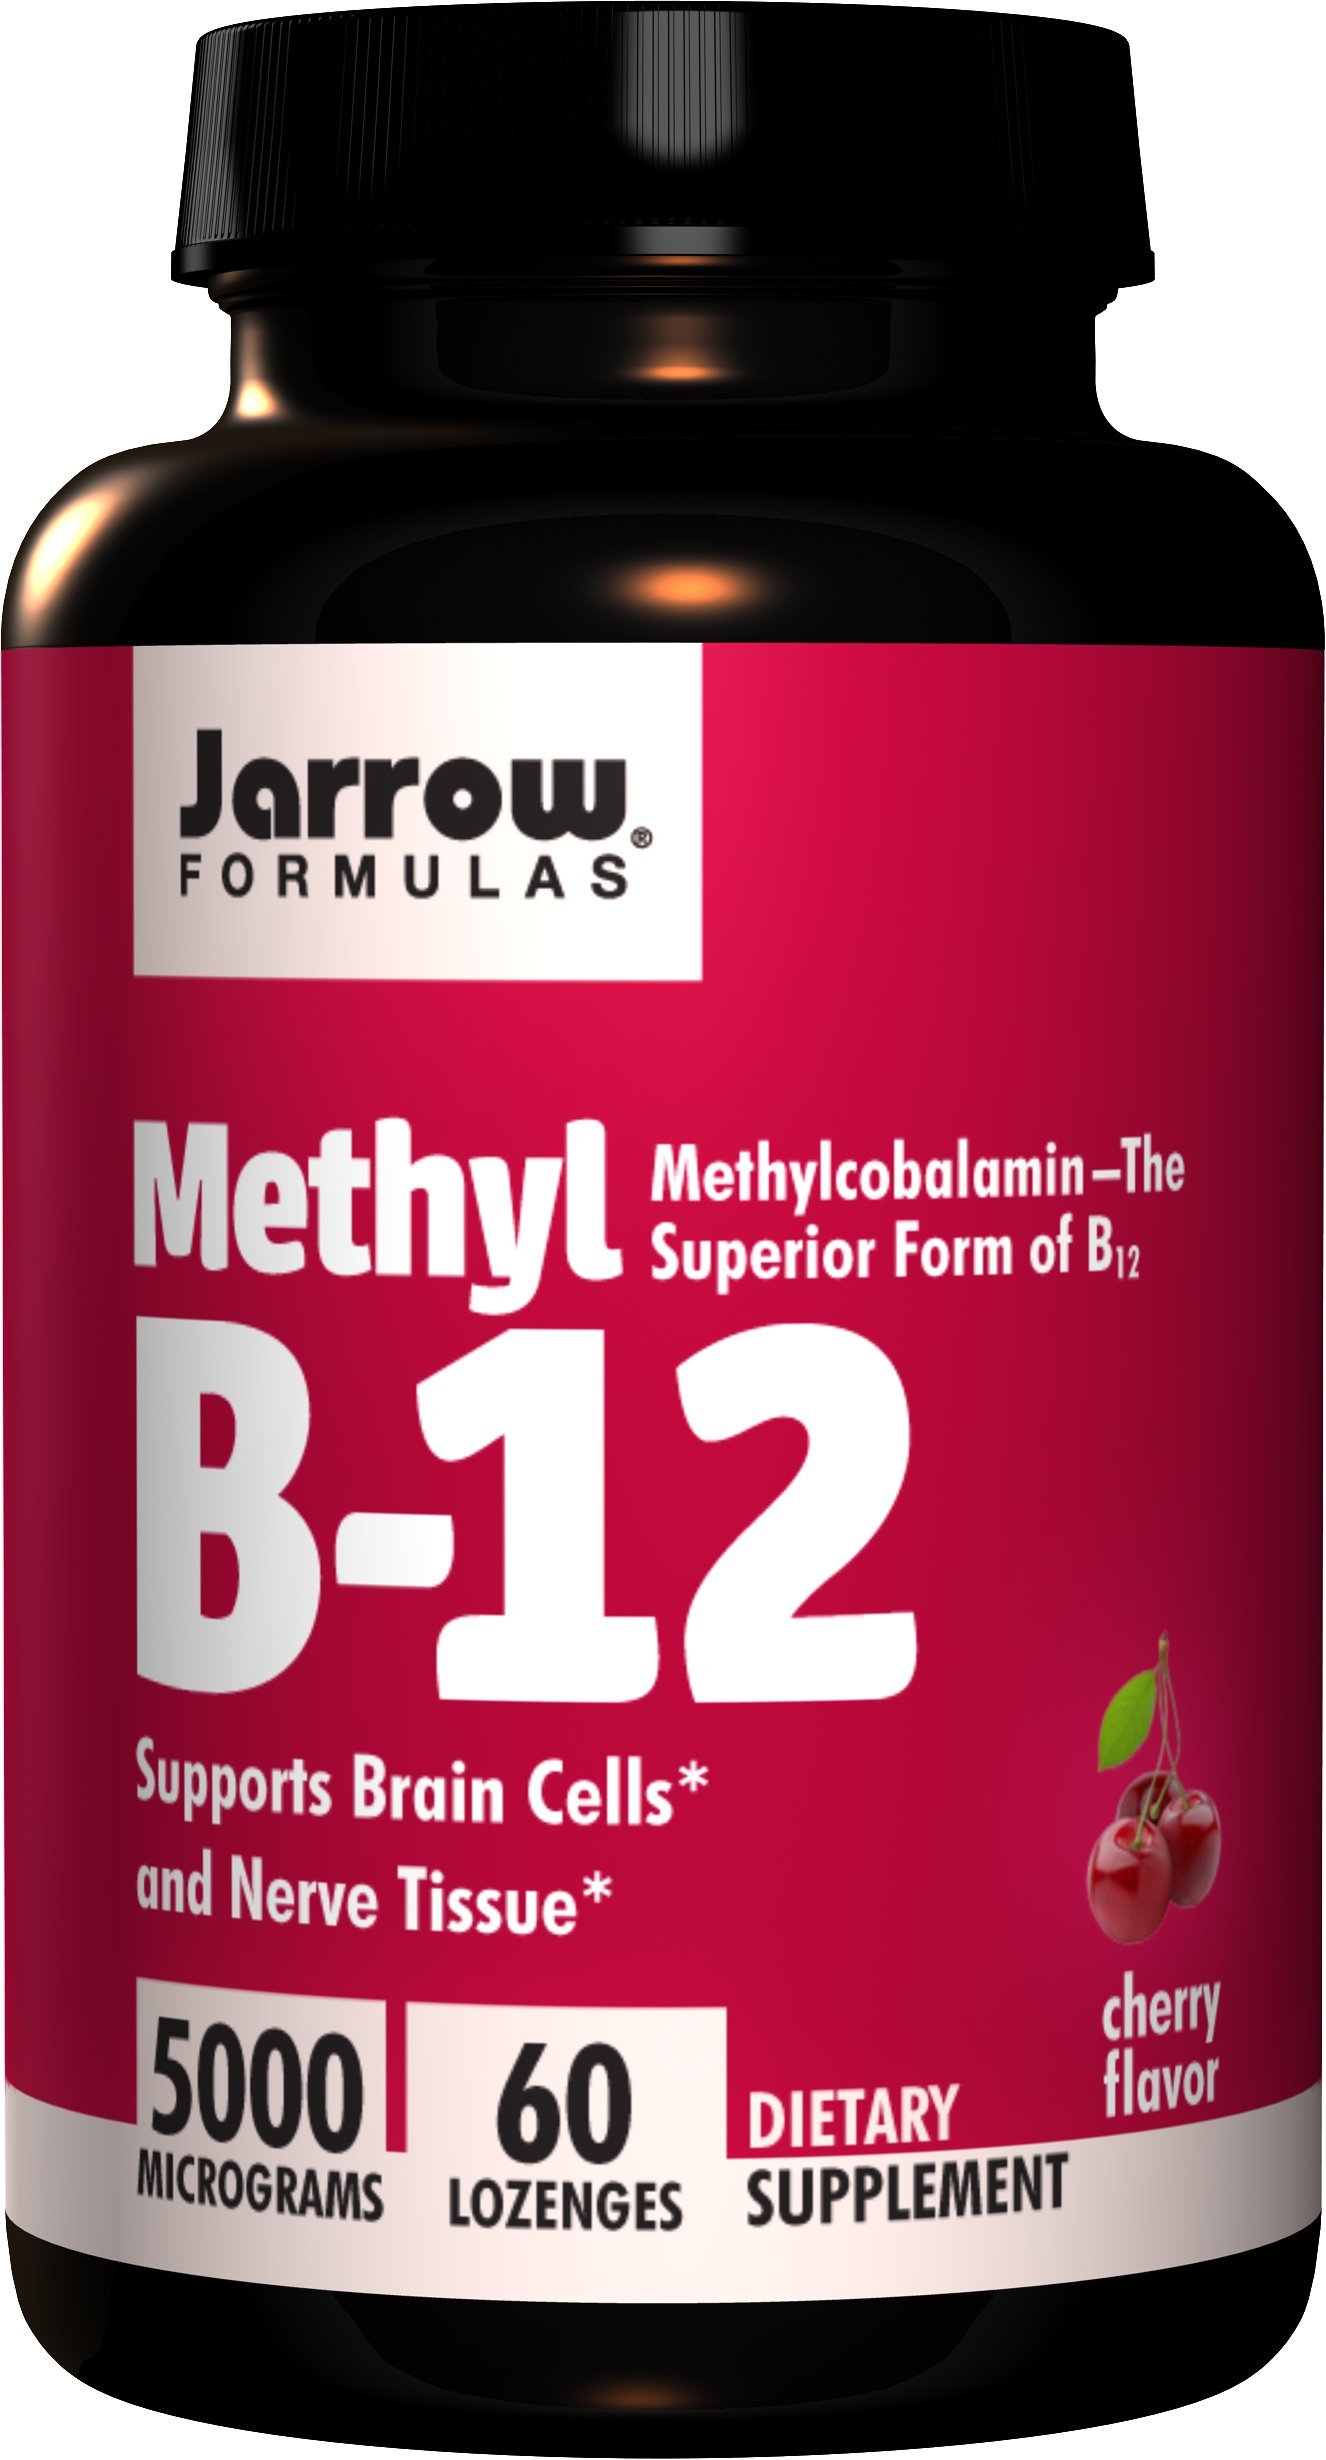 Jarrow Formulas Methylcobalamin (Methyl B12), Supports Brain Cells, 5000 mcg, 60 Lozenges by Jarrow Formulas